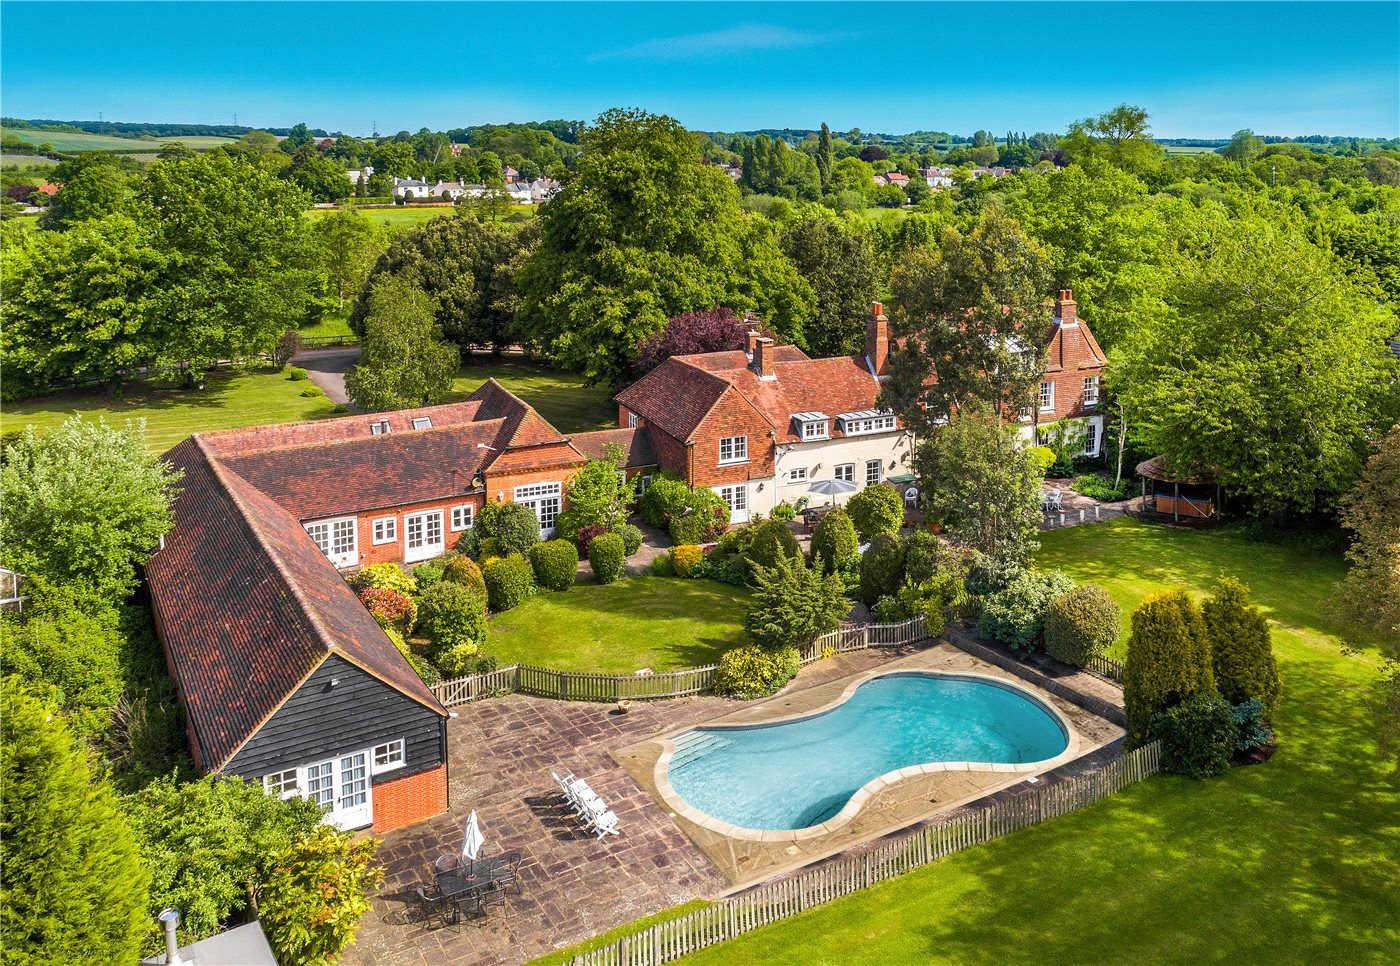 Grade II listed country house on the outskirts on Bentley